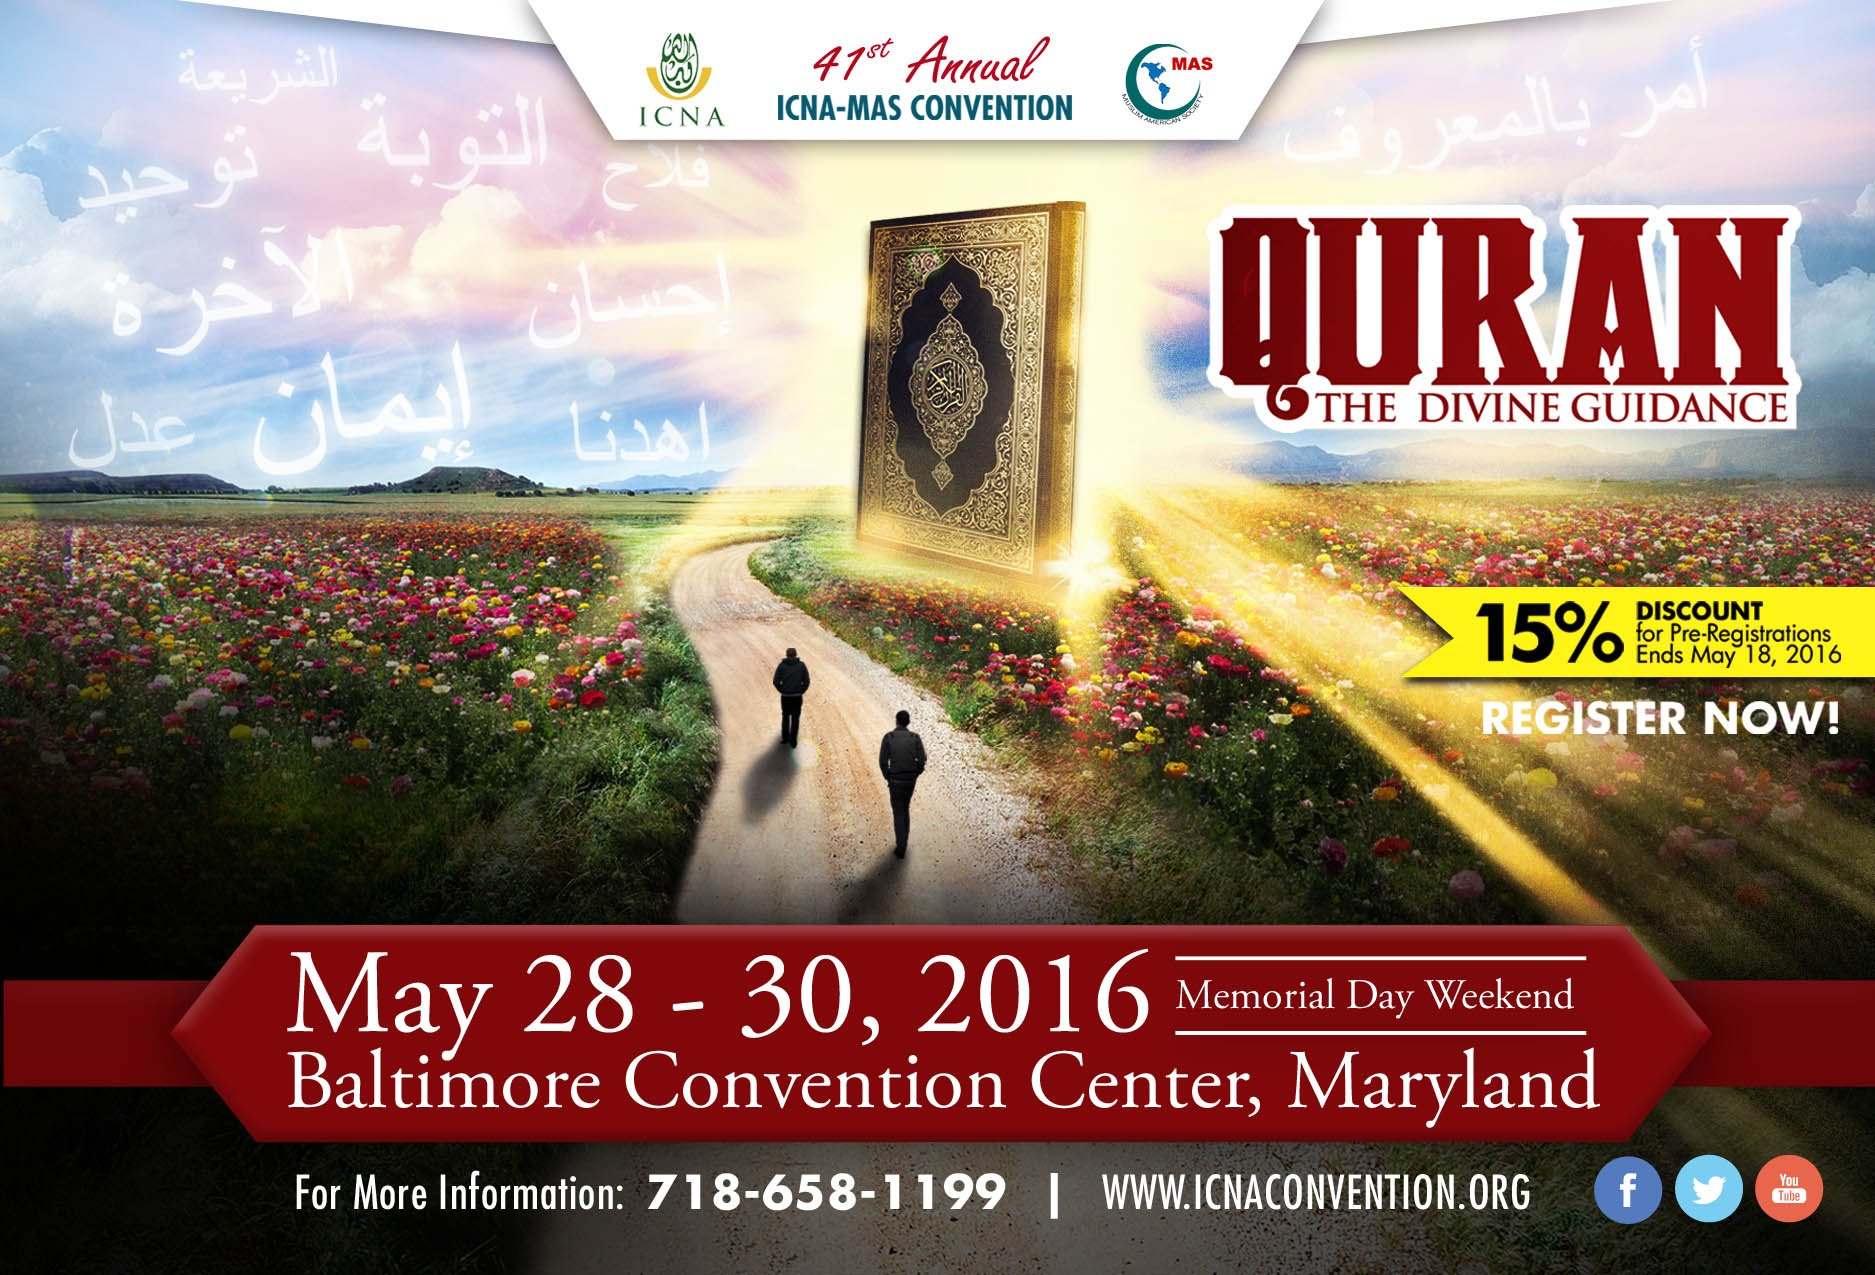 ICNA CSJ Focuses on Social Justice Issues at the 41st ICNA-MAS Convention